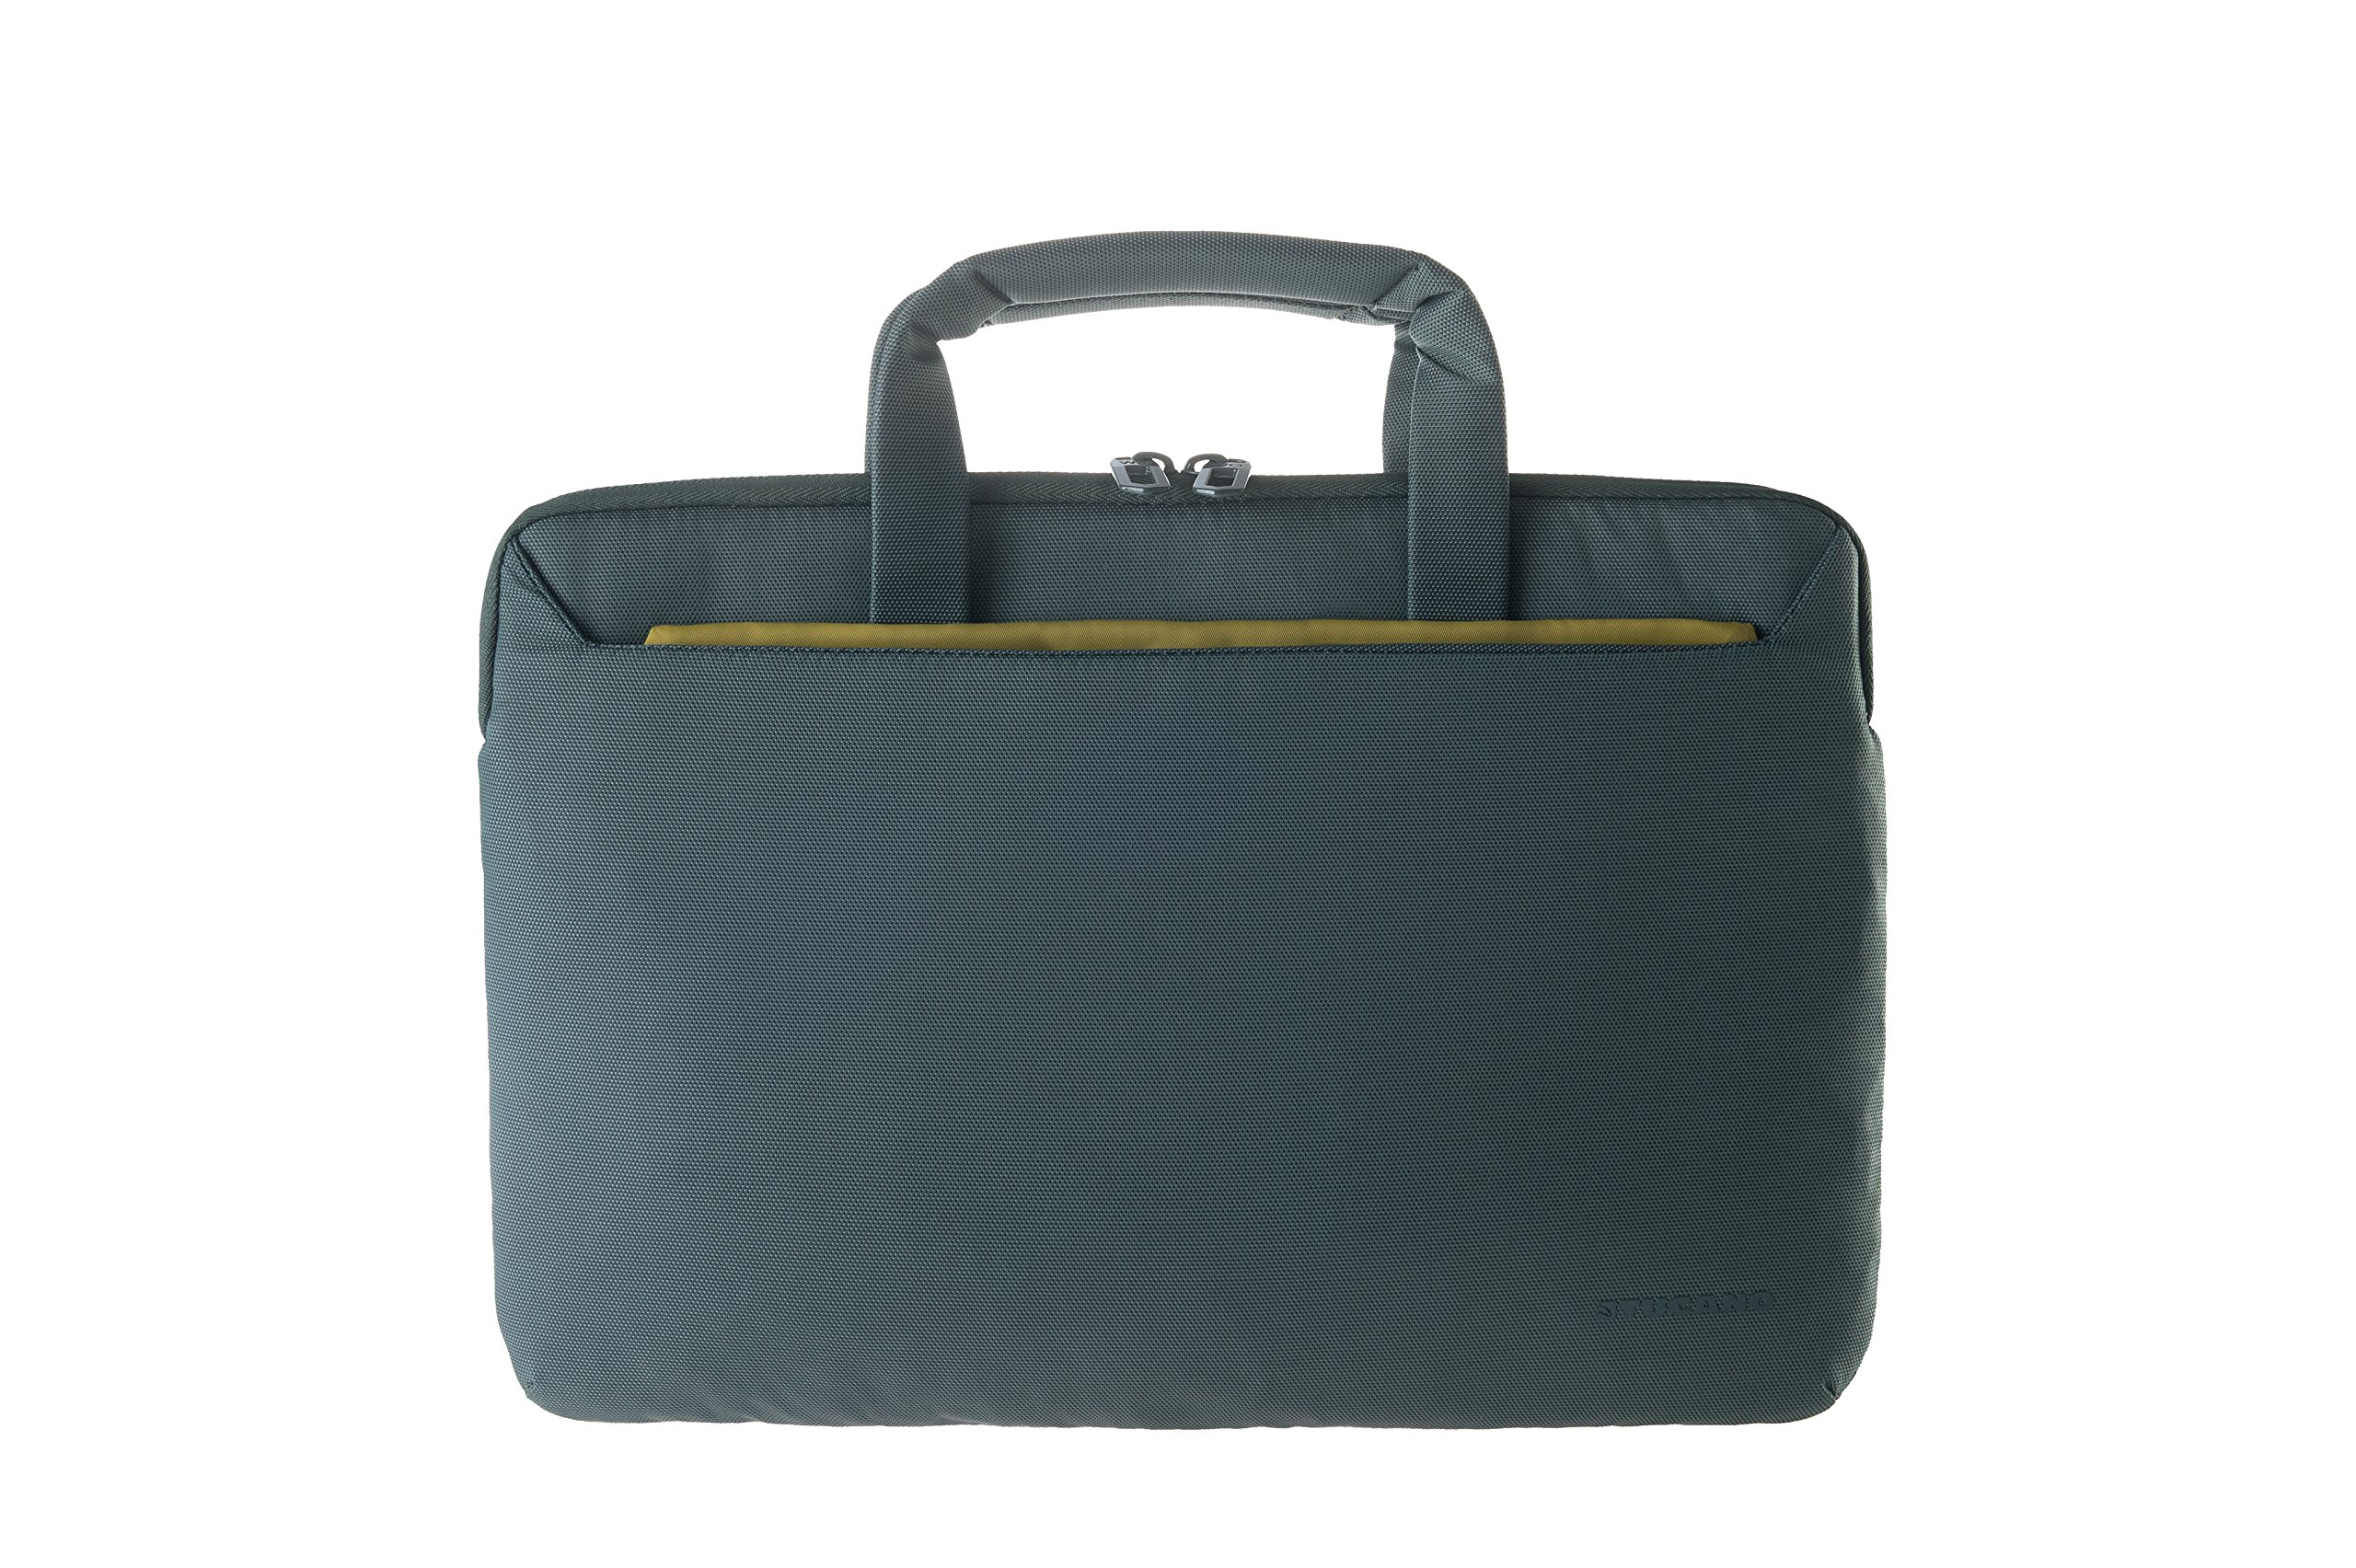 Tucano WO3S-MB13-VG Laptop Computer Bags & Cases